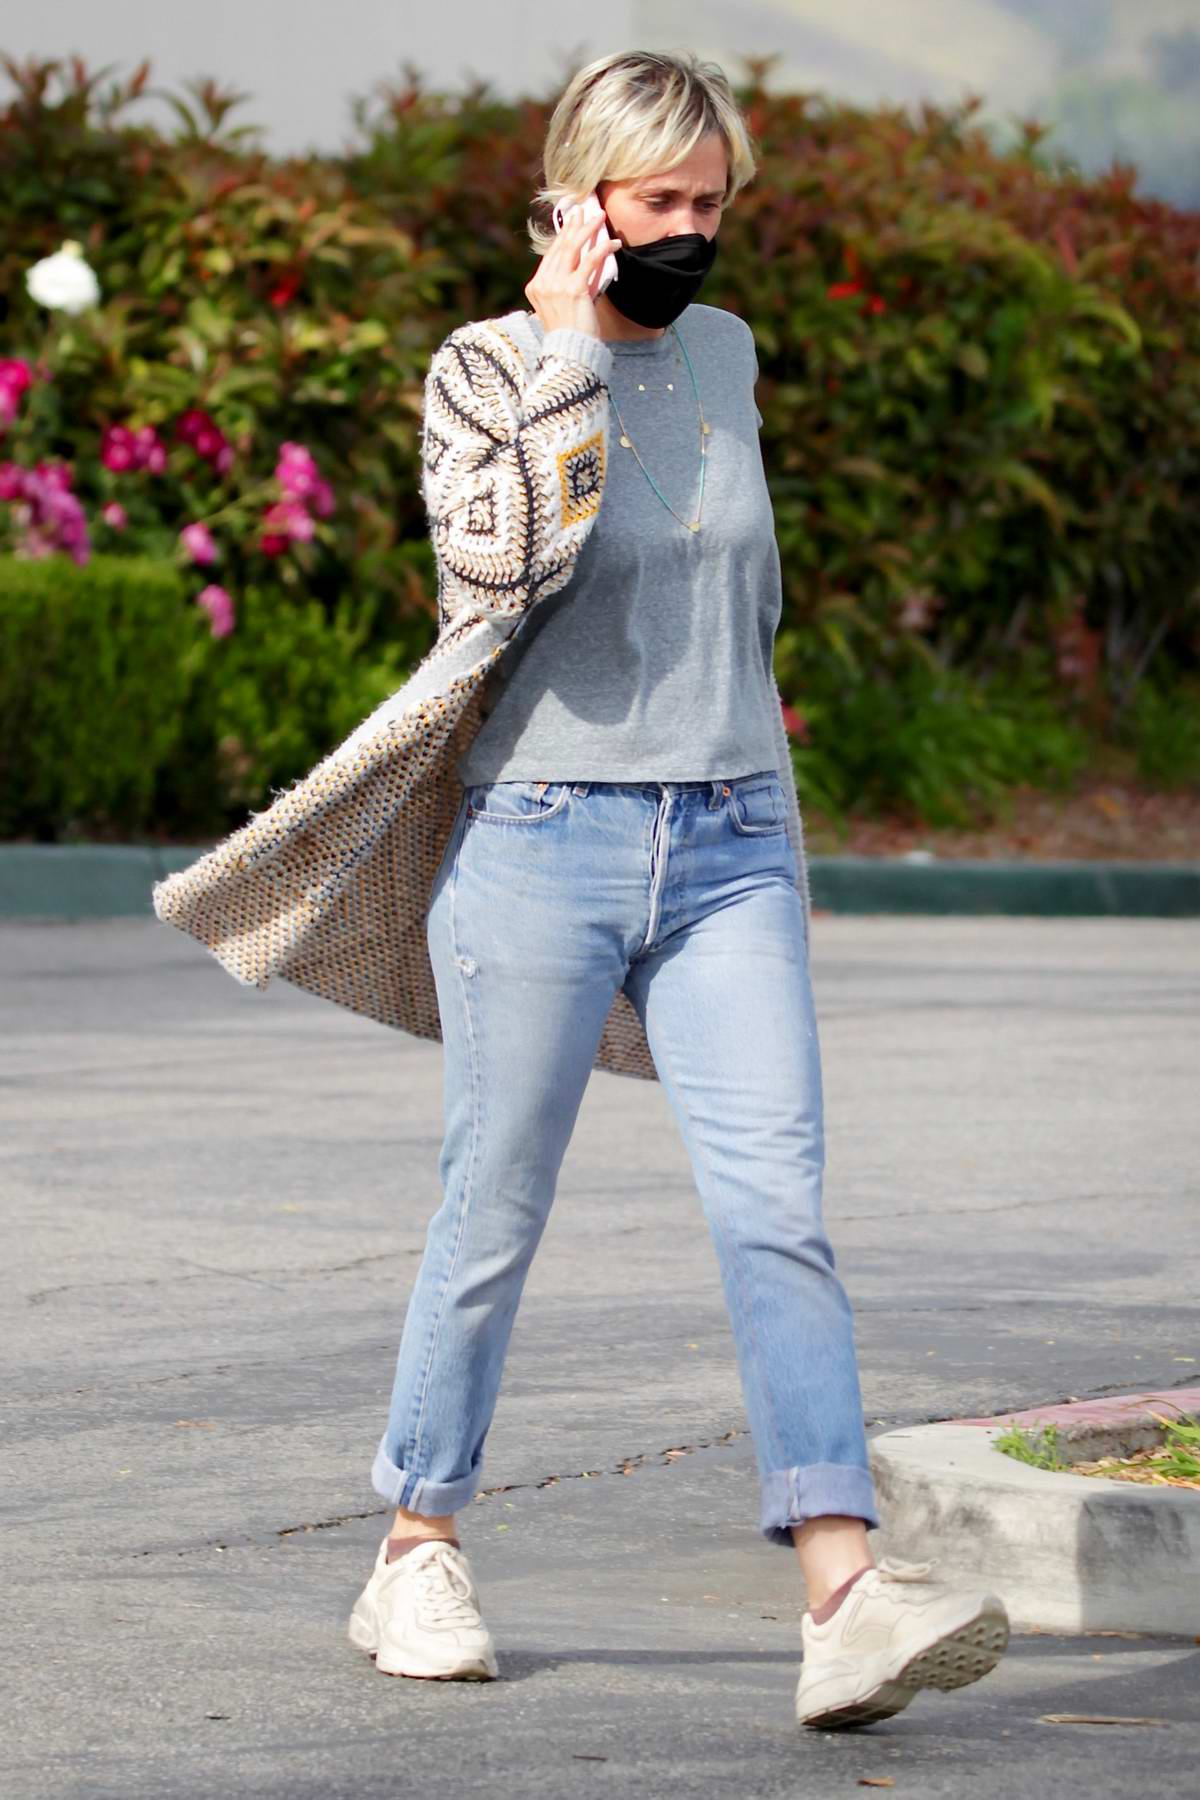 Kristen Wiig and fiance Avi Rothman seen while shopping groceries at Erewhon supermarket in Calabasas, California